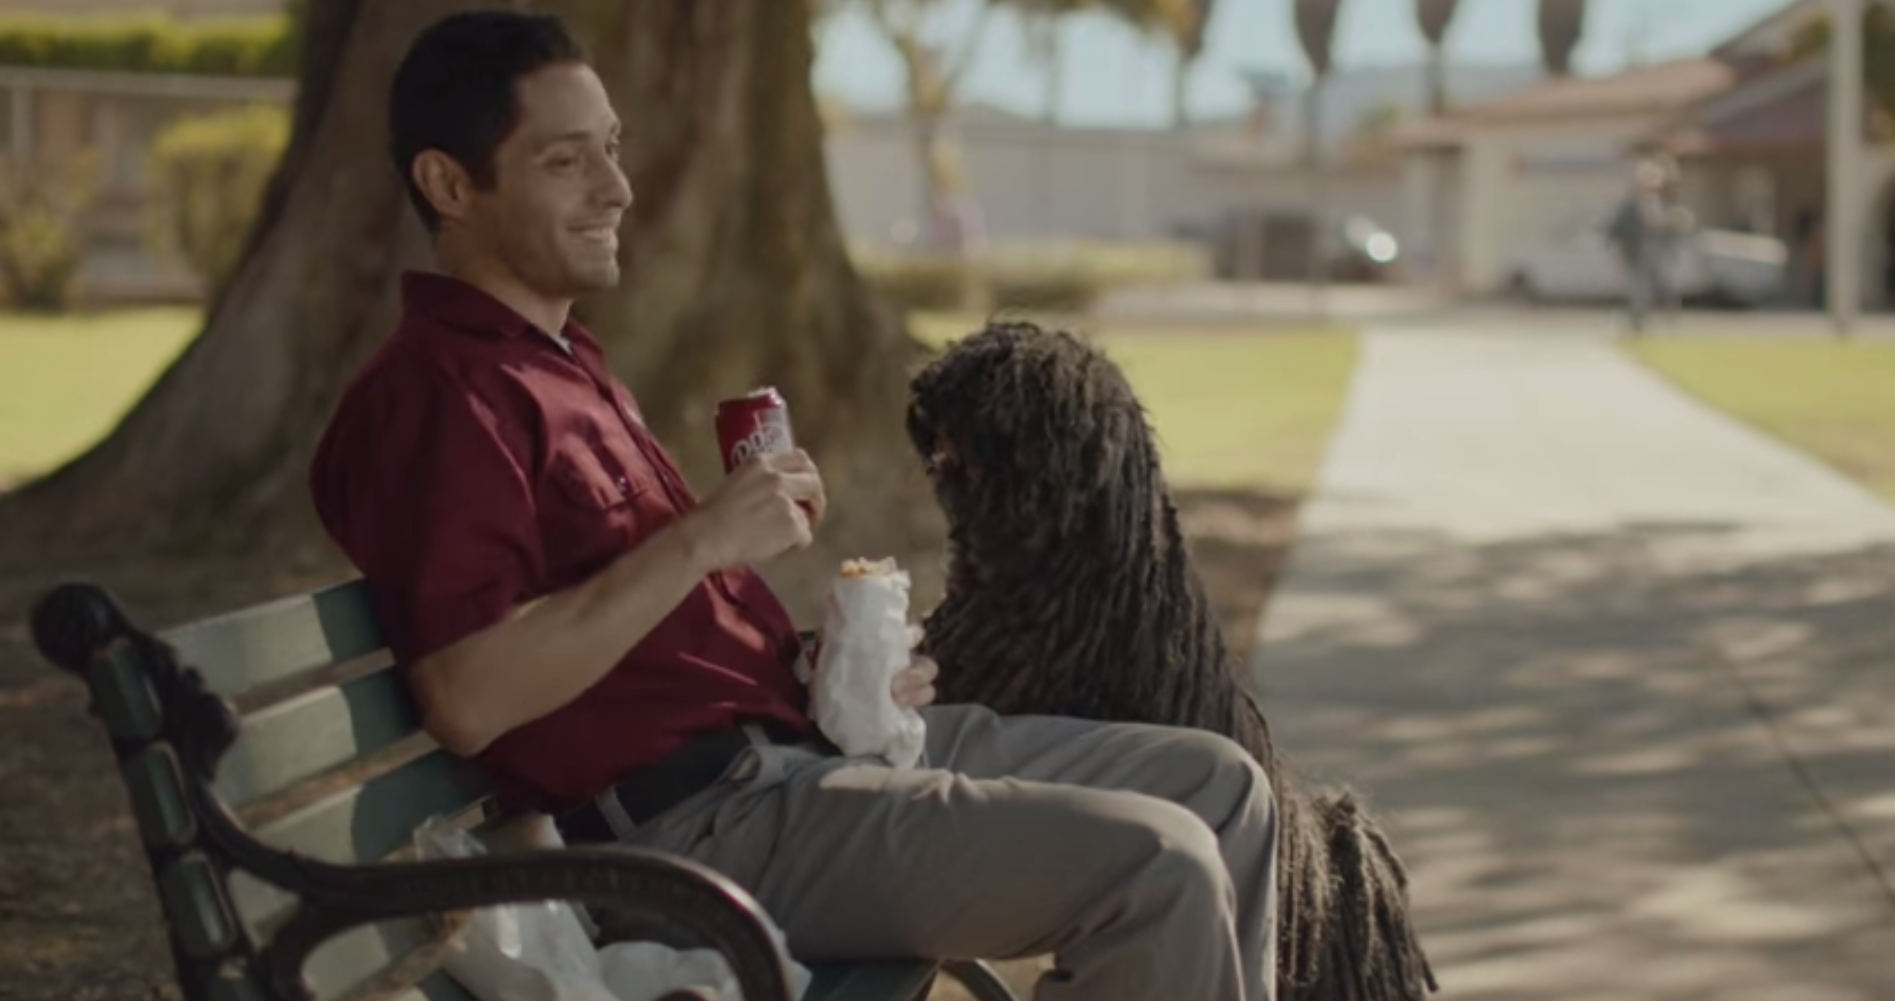 VIDEO: Dr Pepper Is Promoting Drink with Hungarian Puli